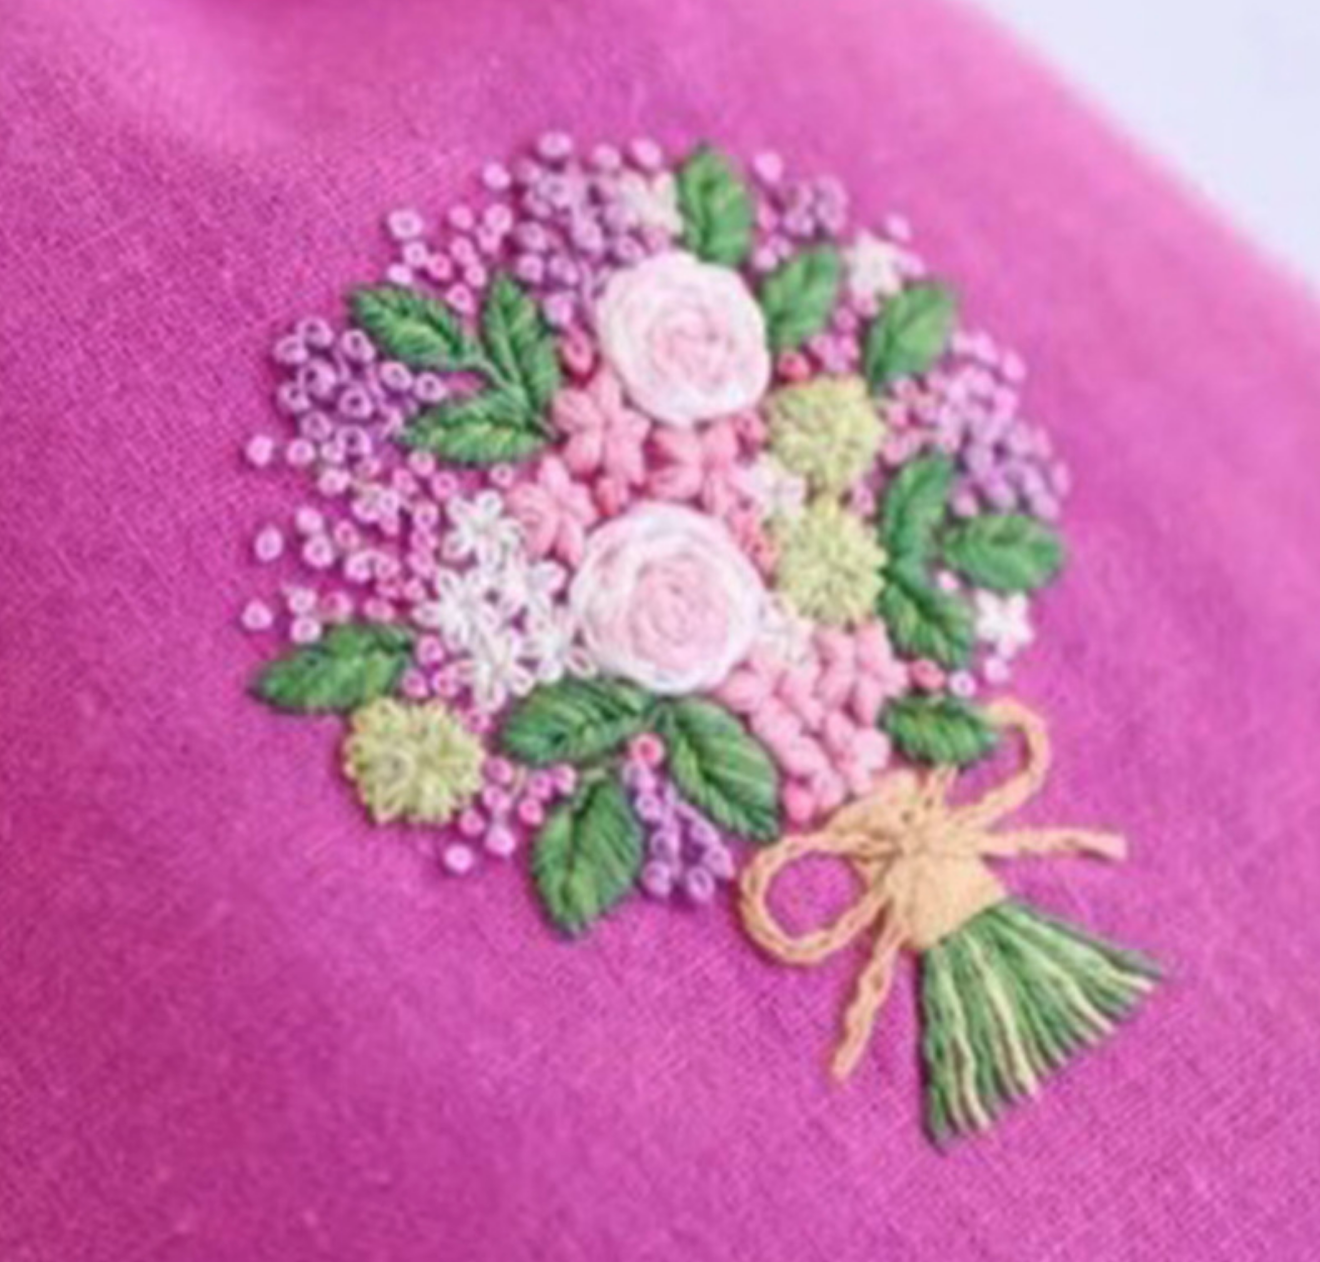 Pink Bouquet on Pink Embroidery